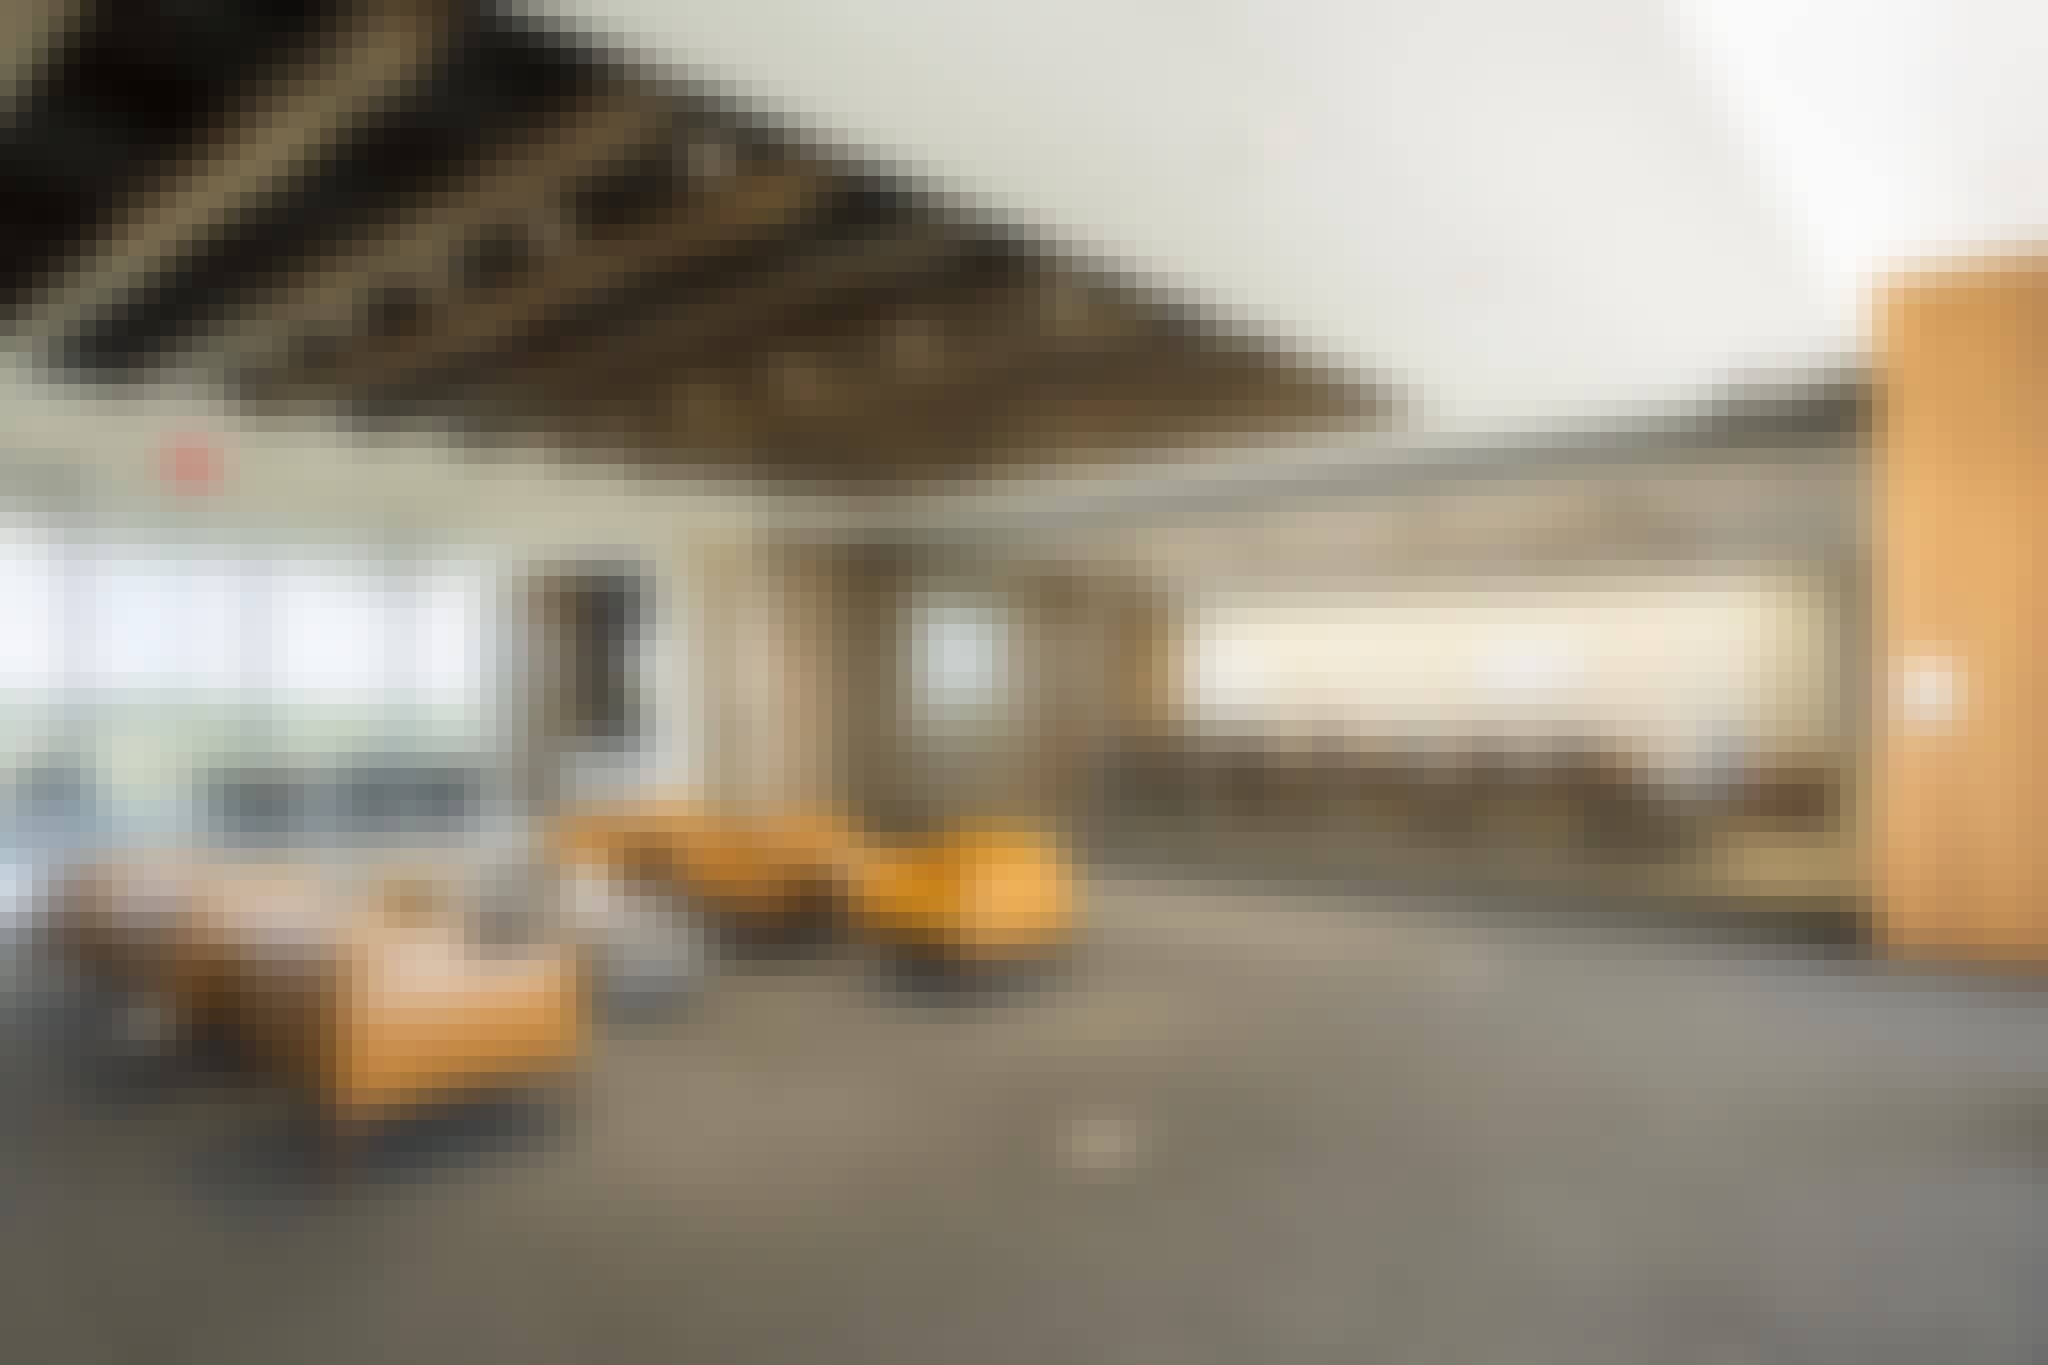 Sound control frameless glass walls in open office environment.